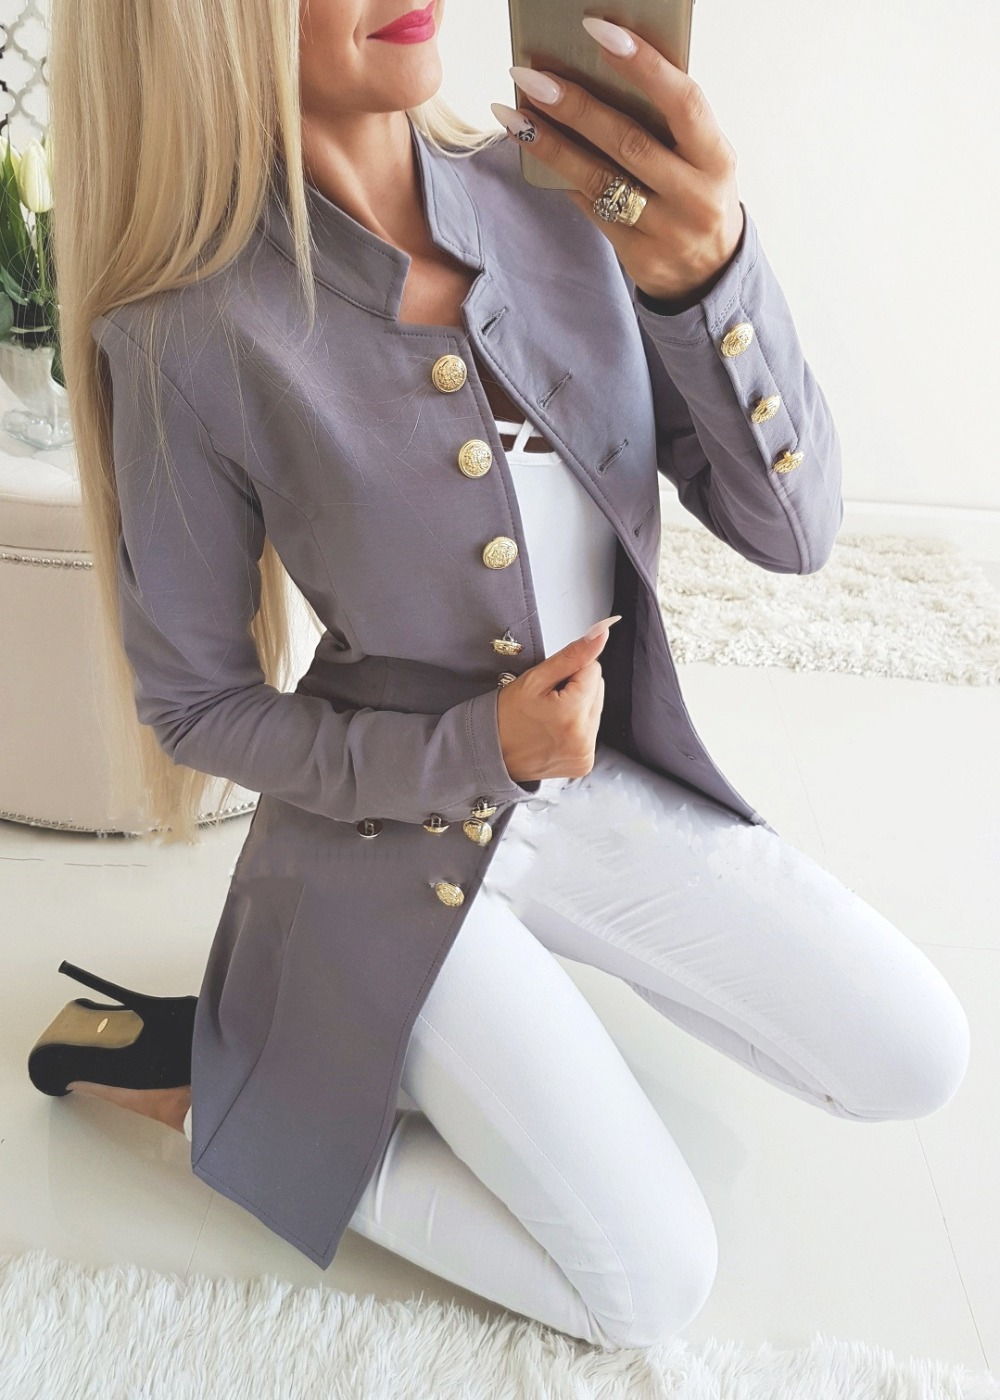 Long Windbreaker Trench-Coat Autumn Casual-Trend Fashion Women New-Brand Slim America